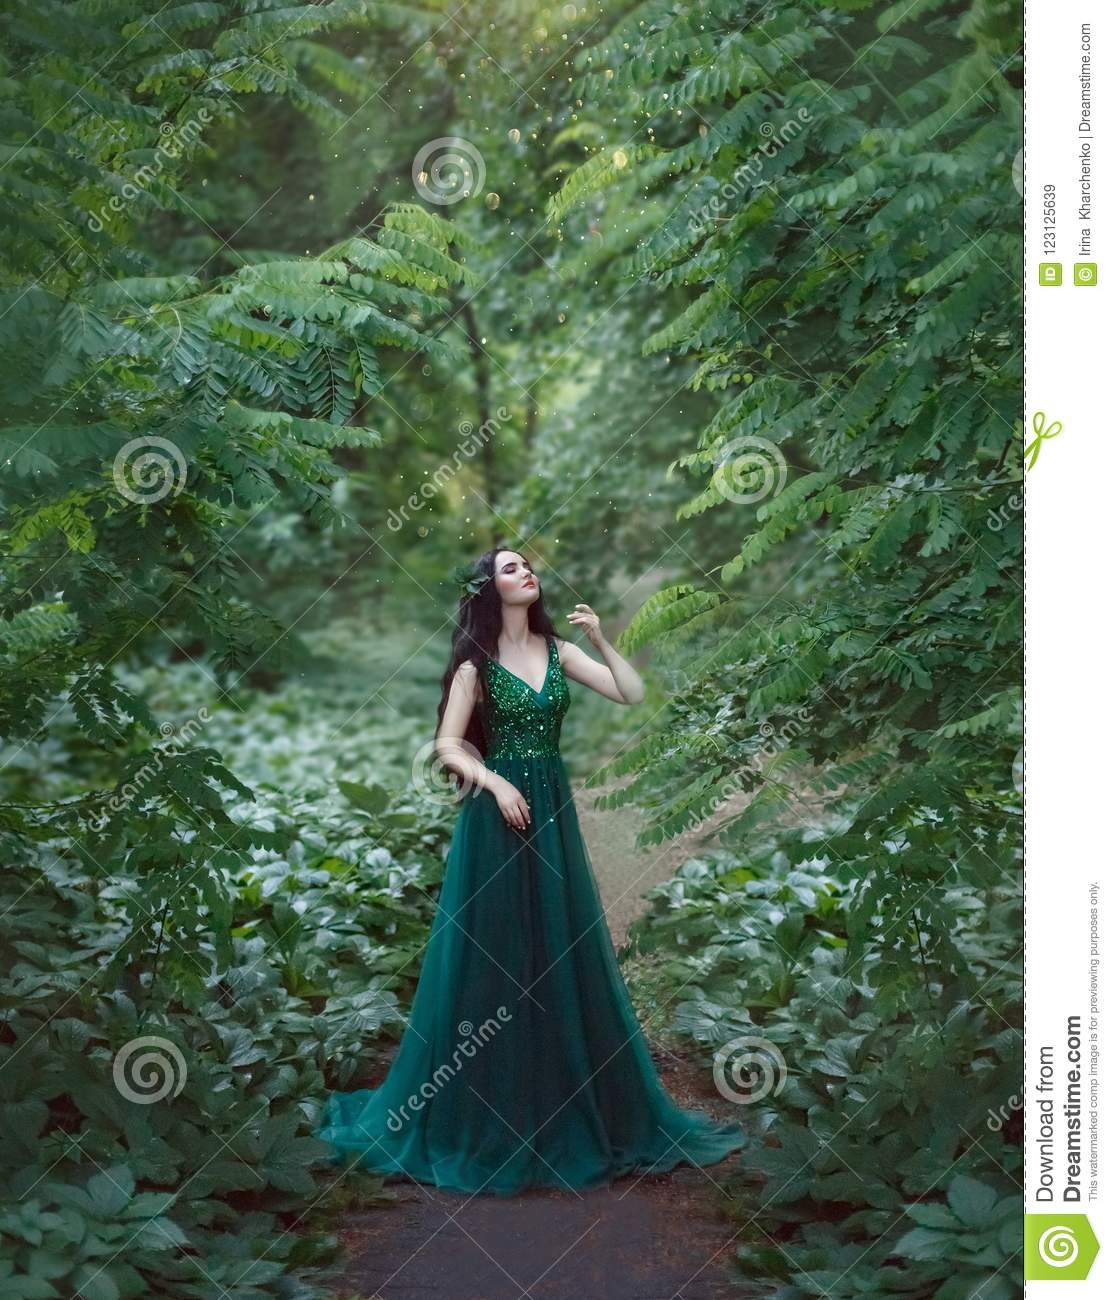 A forest nymph, a dryad in a luxurious, emerald dress, walks in the forest. Princess with healthy, long, black hair